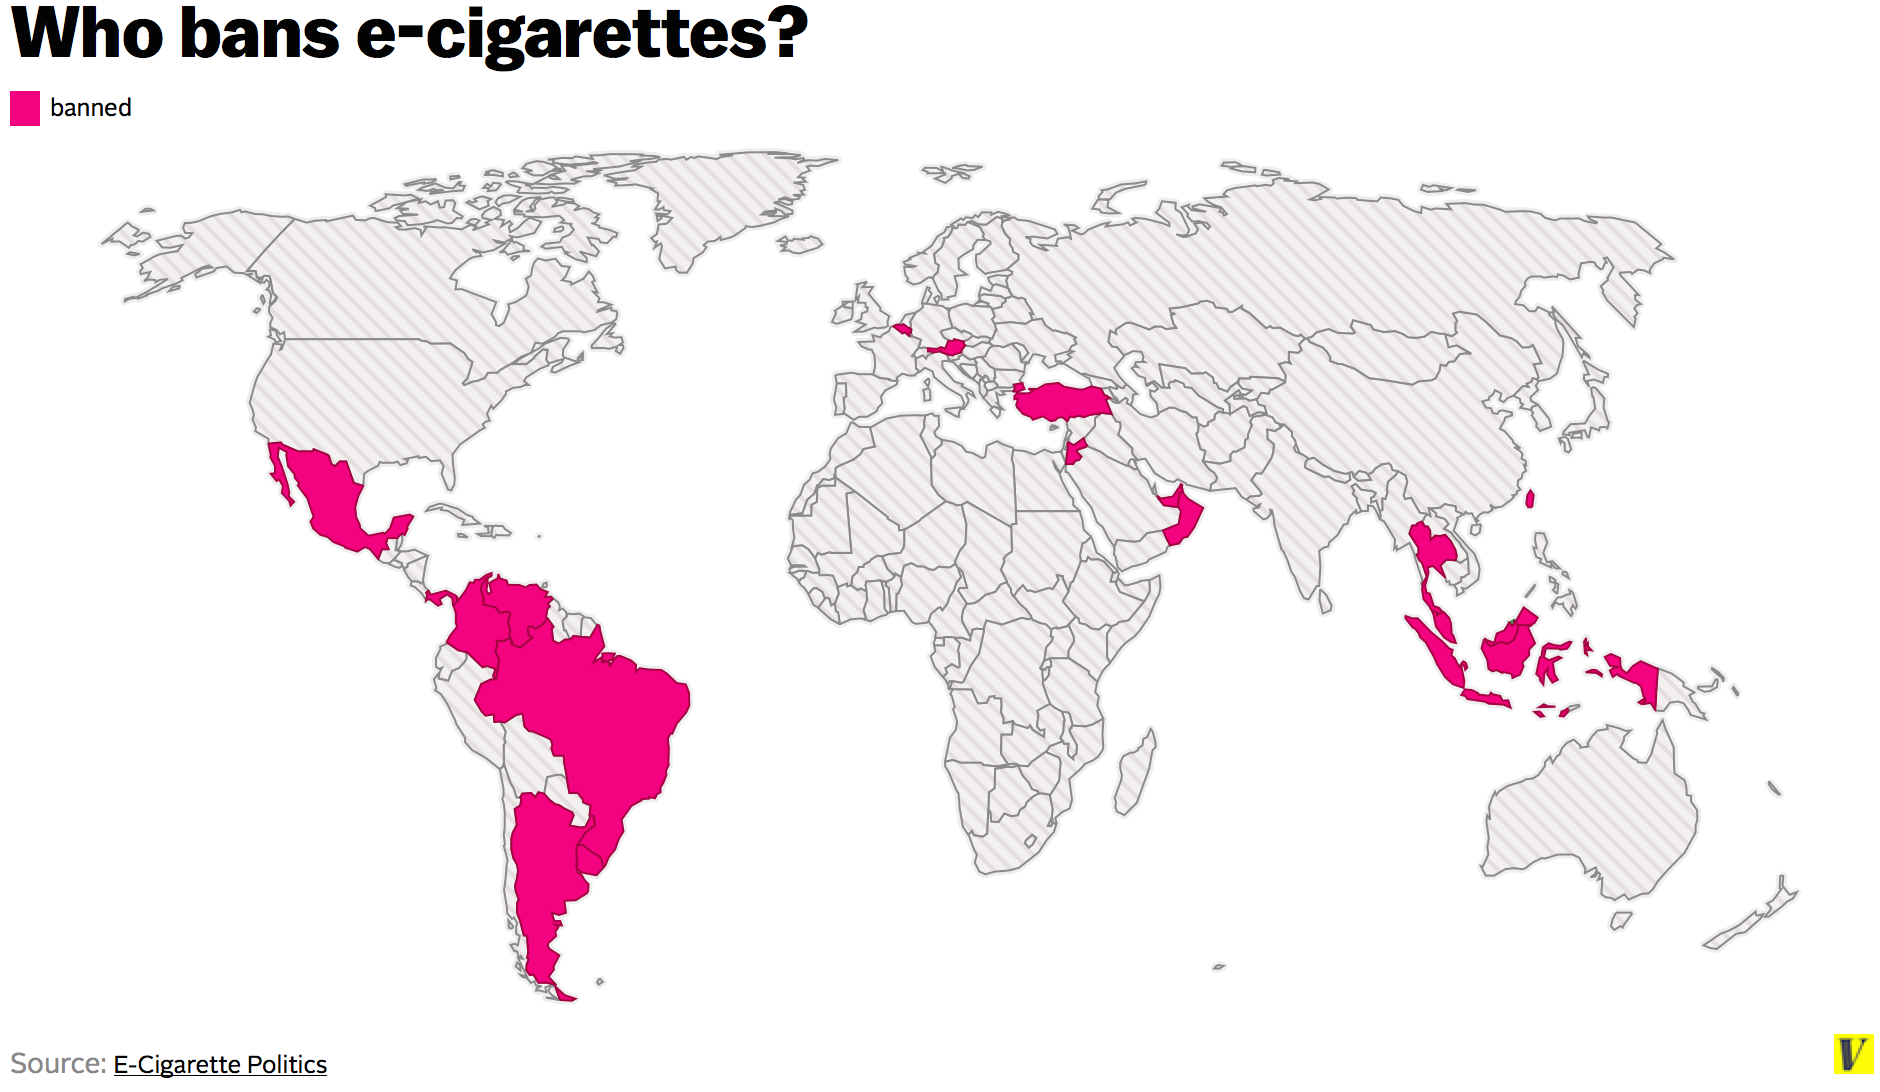 In a free country, what gives a group of people the right to ban cigarettes?